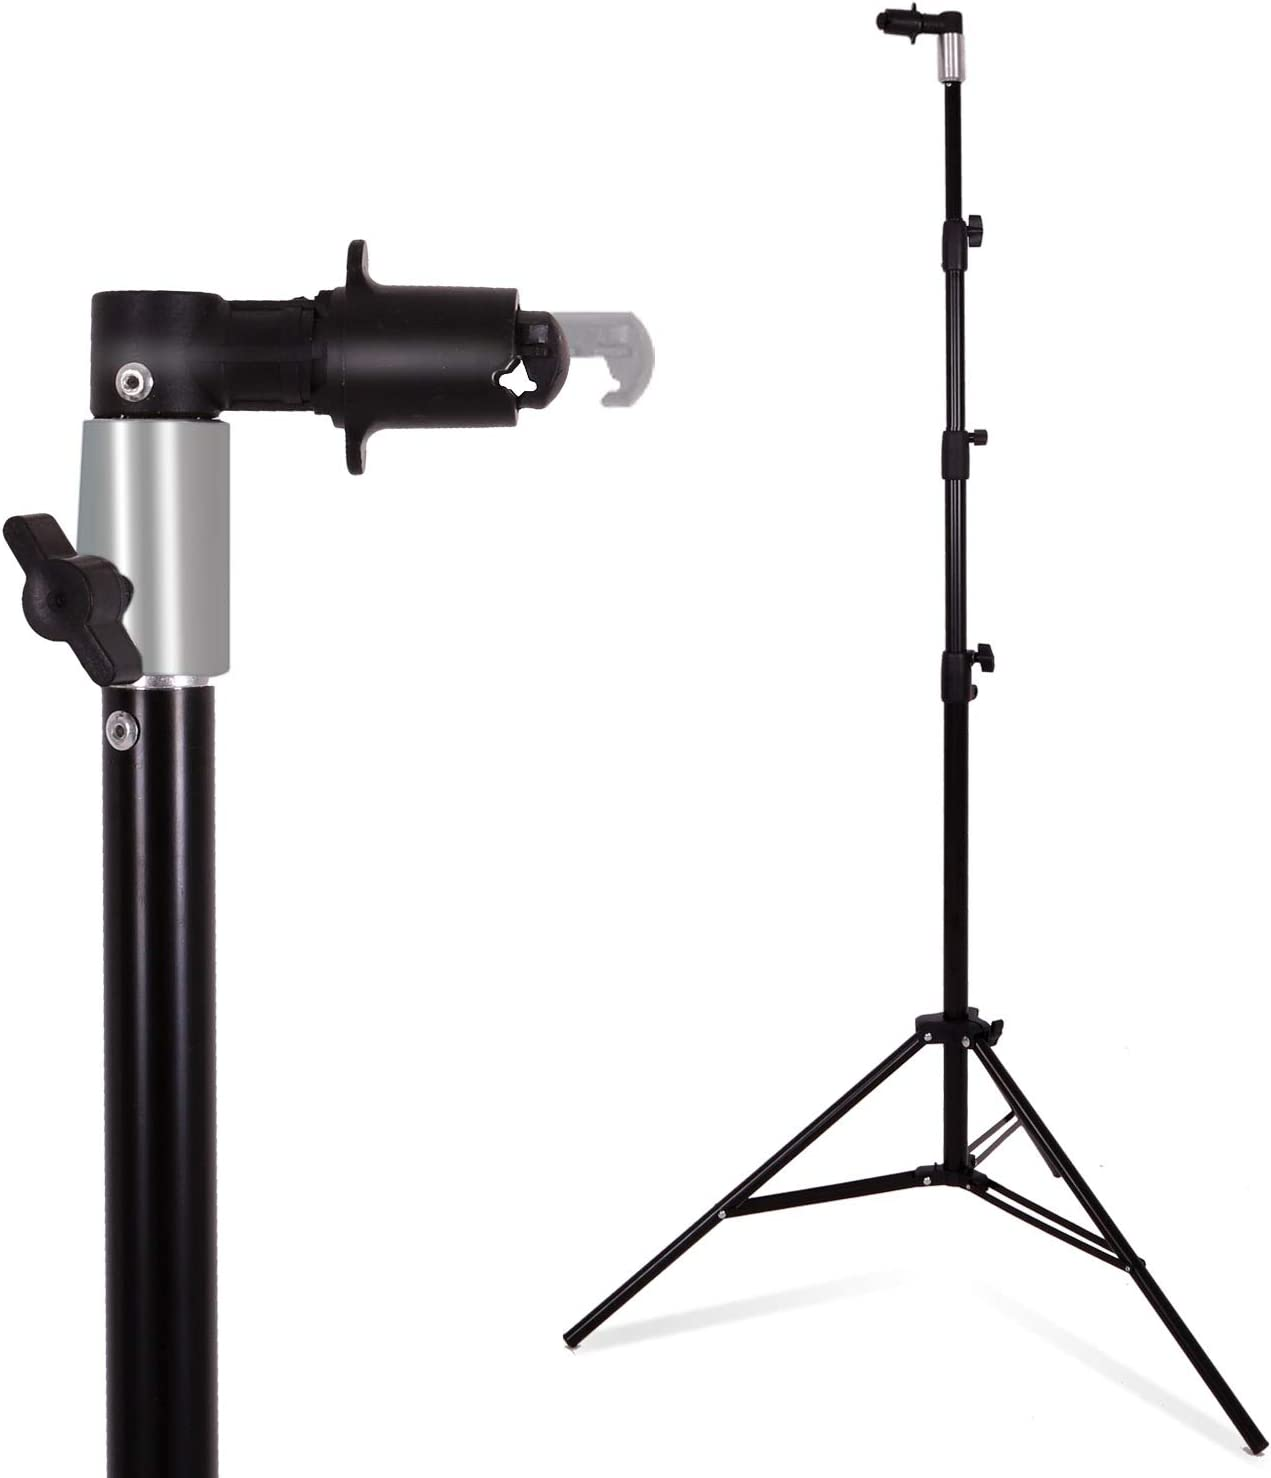 GSKAIWEN Reflector Backdrop Holder Clip Light Seattle Mall Max 76% OFF and R Stand 8.5FT